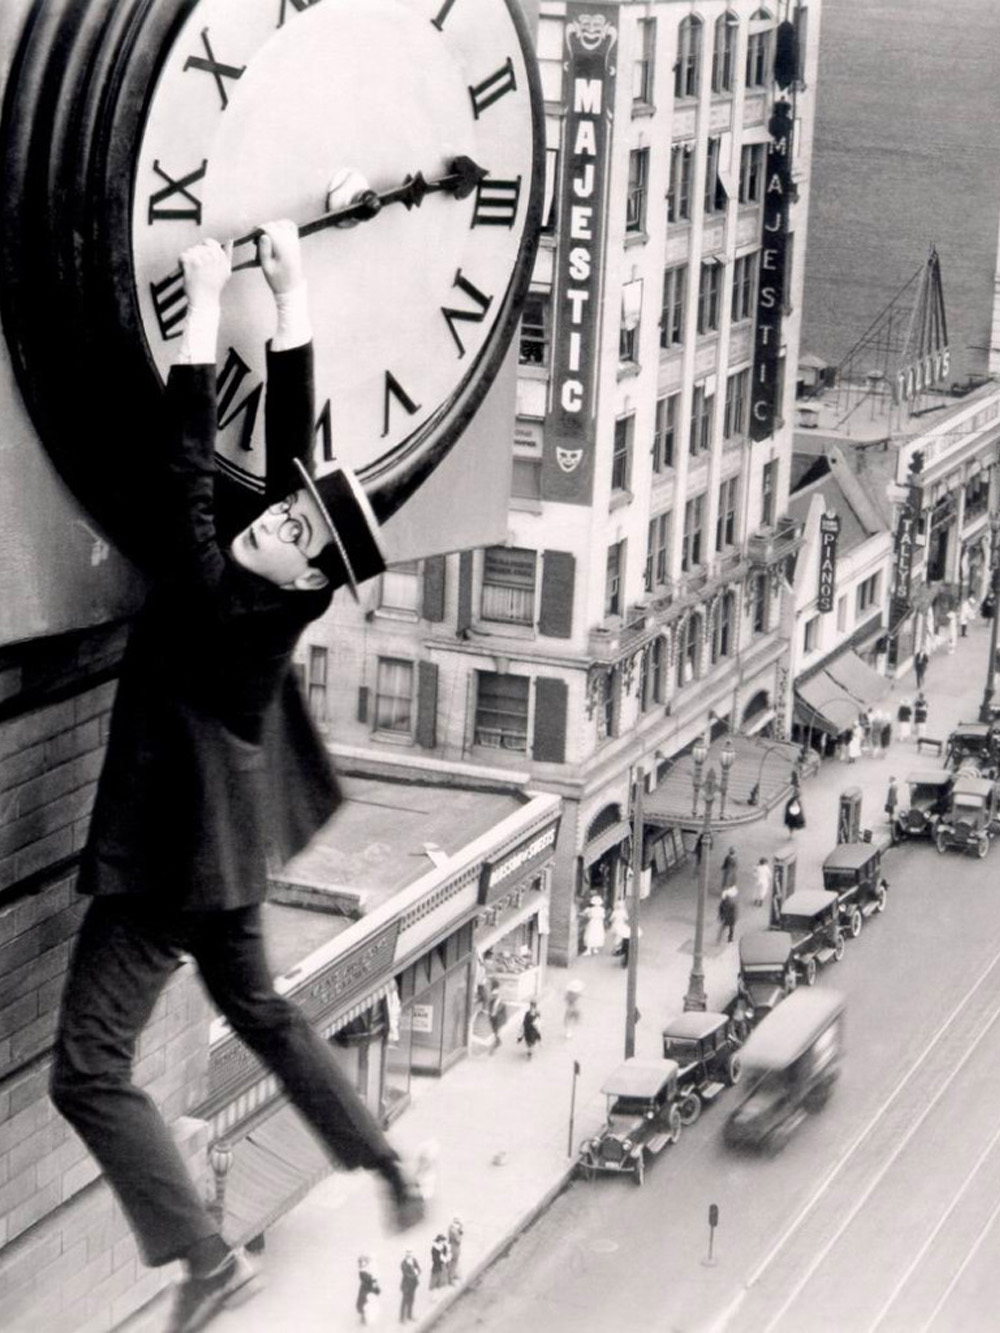 Harold Lloyd in Safety last! 1923 scene from Christian Marclay's The Clock